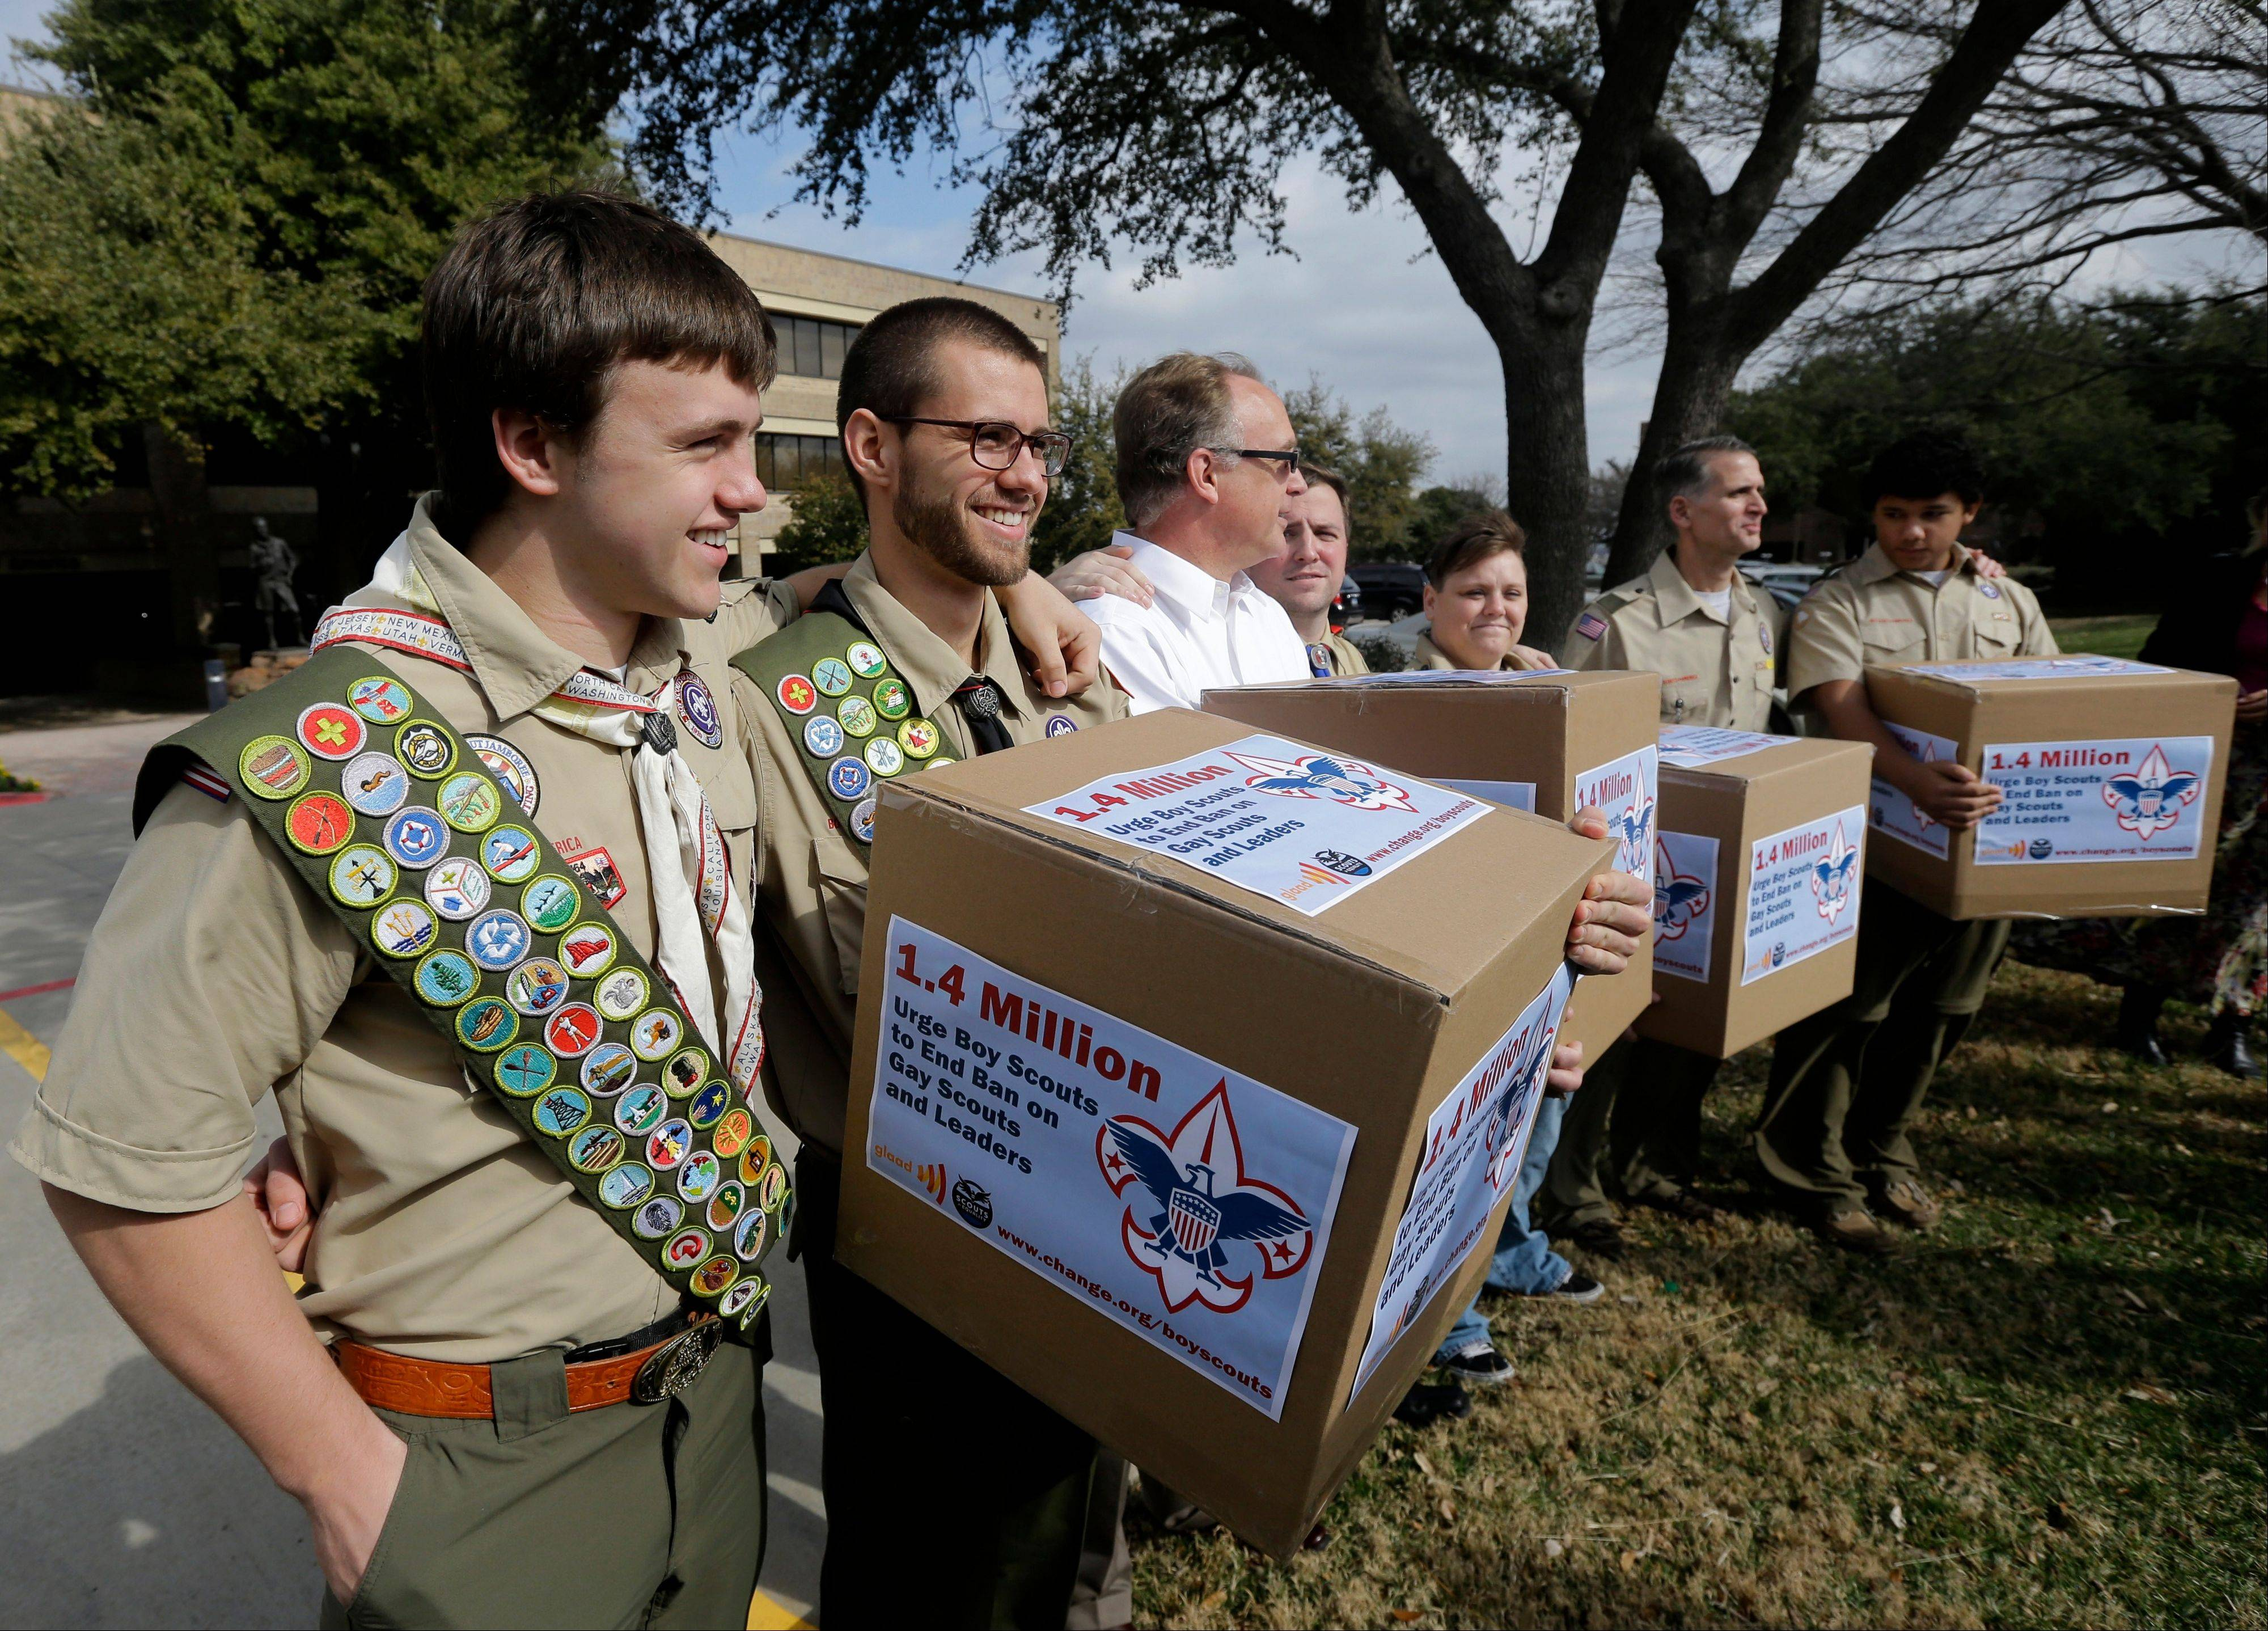 James Oliver, left, hugs his brother and fellow Eagle Scout, Will Oliver, who is gay, as Will and other supporters carry four boxes filled with petitions to end the ban on gay Scouts and leaders.